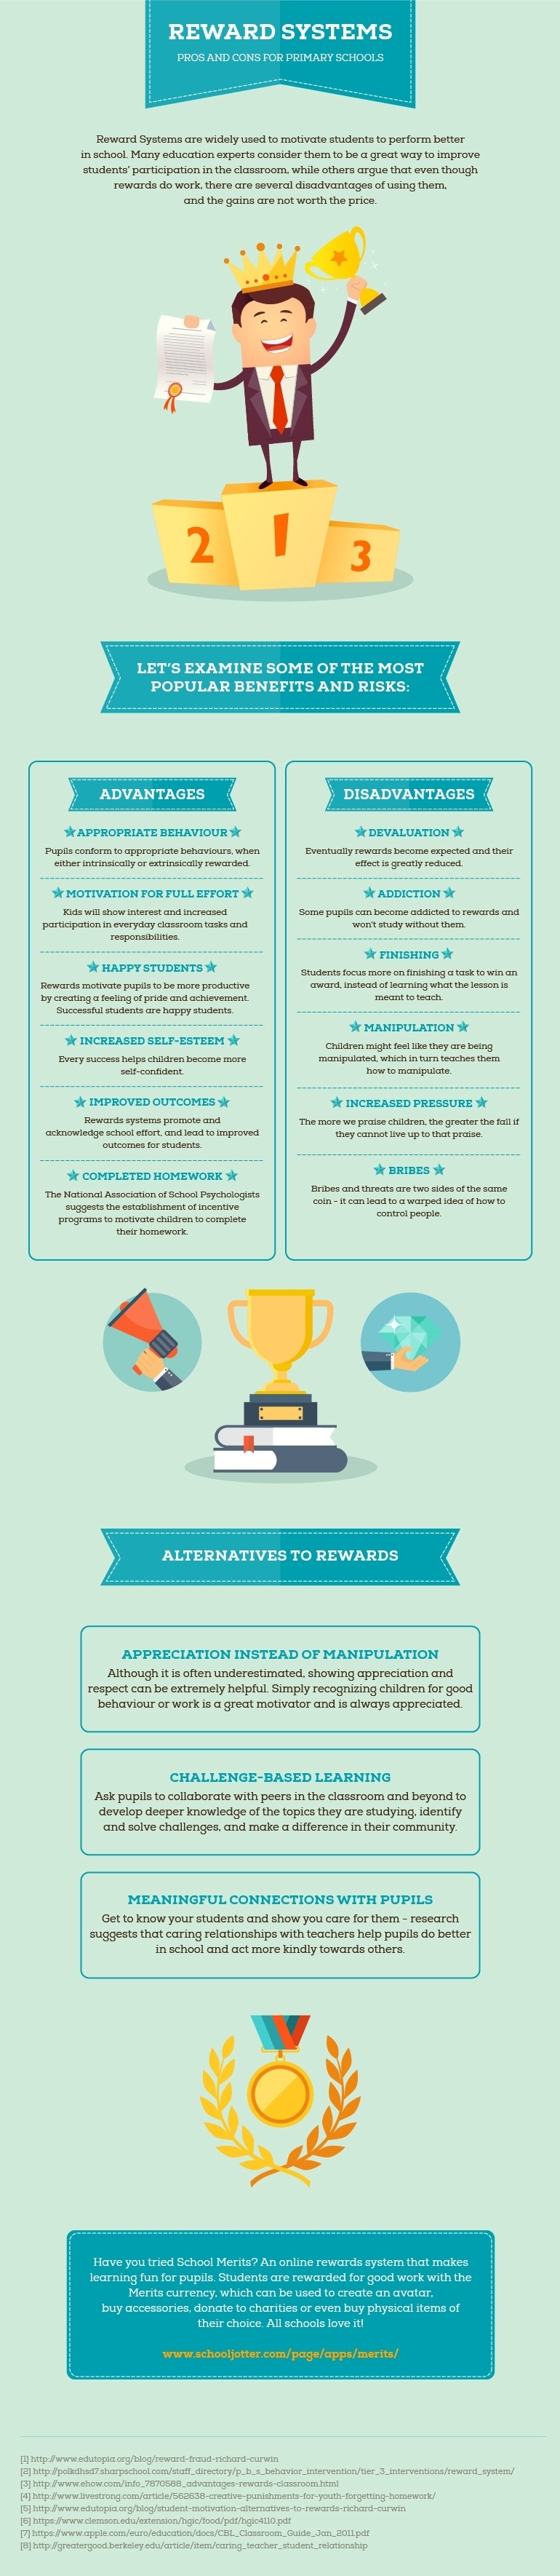 pros and cons of reward systems for primary schools infographic pros and cons of reward systems for primary schools infographic